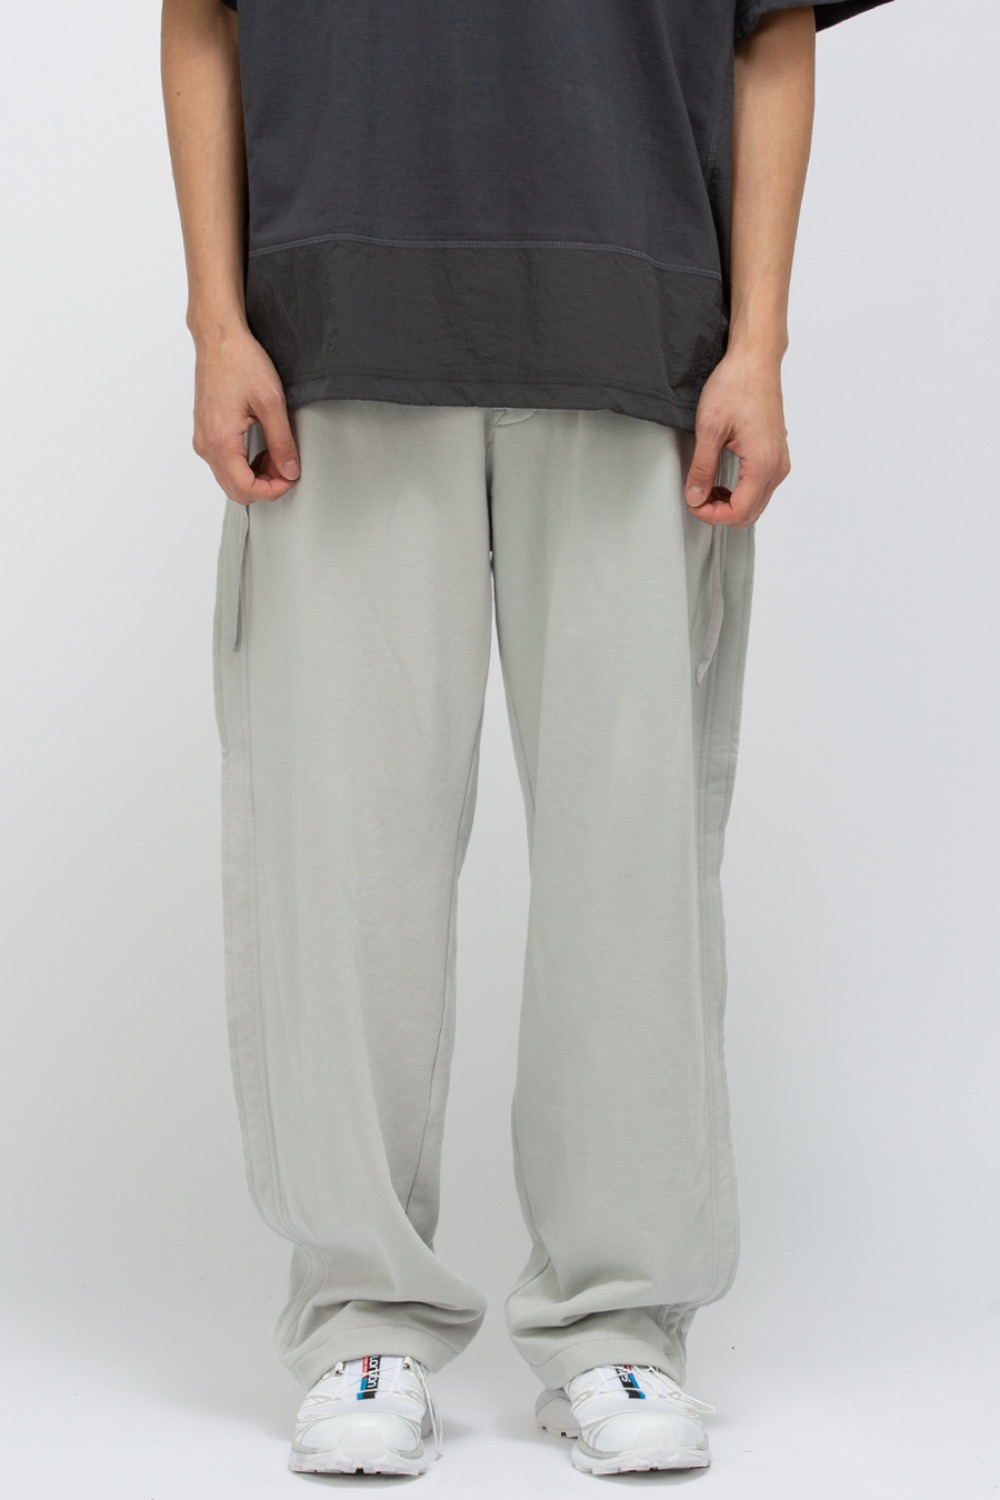 RAW EDGED CUT PANTS LIGHT GREY